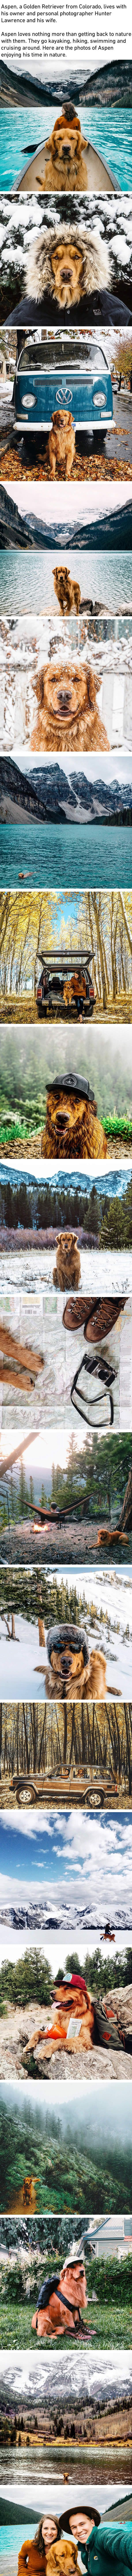 Aspen The Golden Retriever Loves Going On Adventures With His Humans - 9GAG